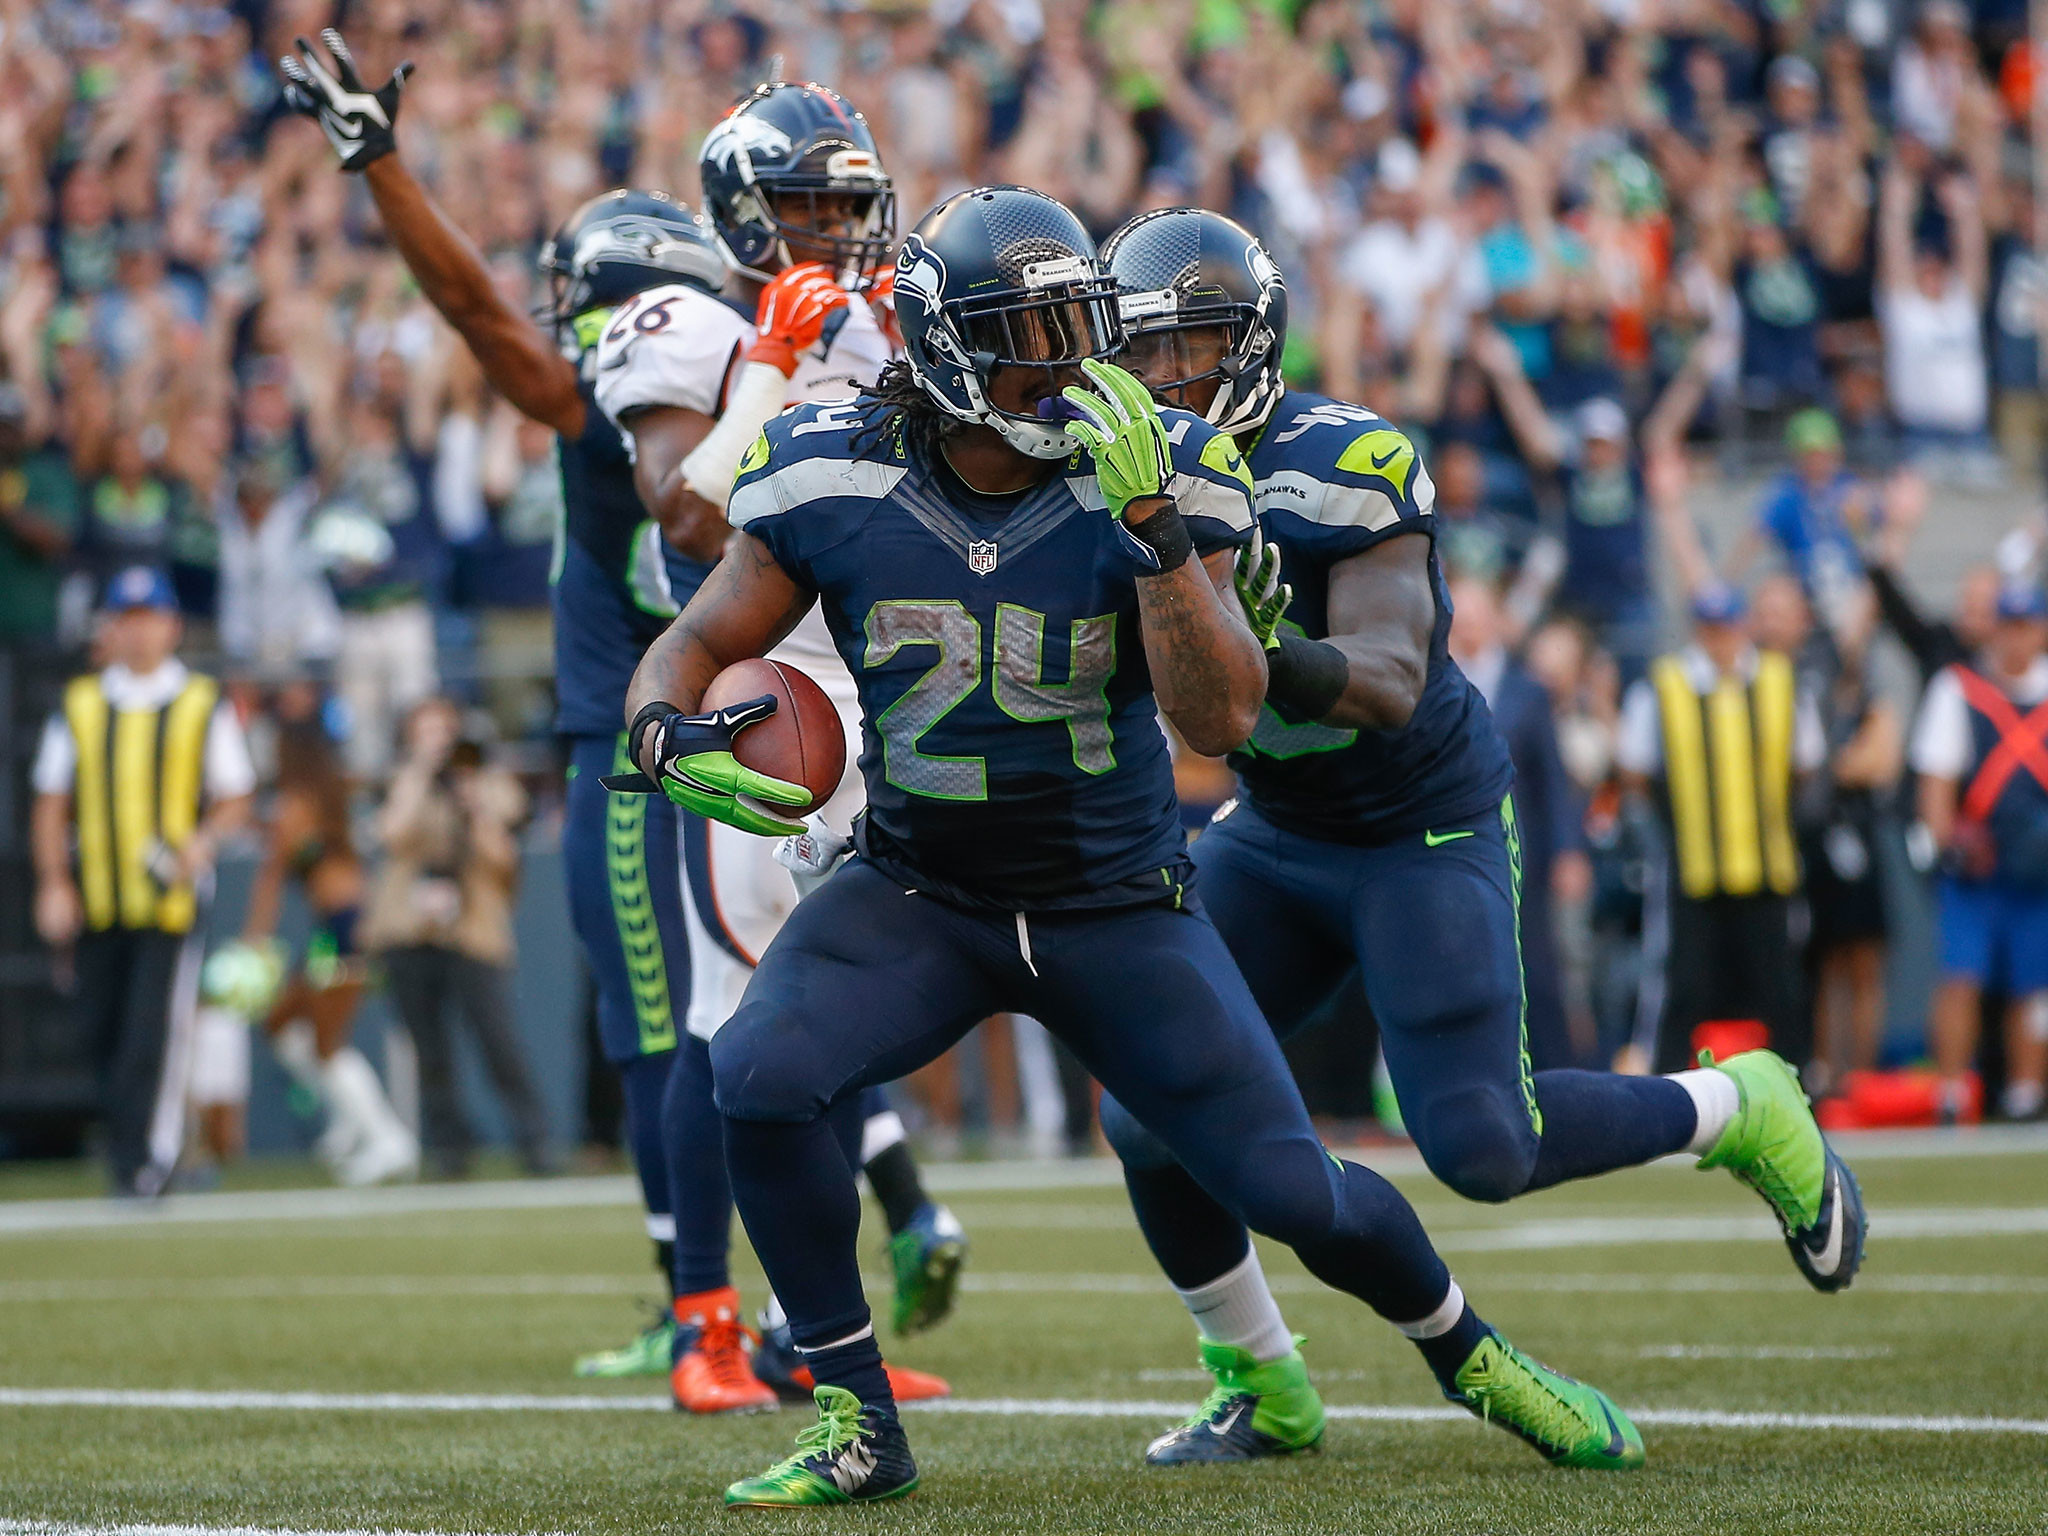 Marshawn Lynch has a dreadlock ripped out but carries on as if nothing  happened | The Independent